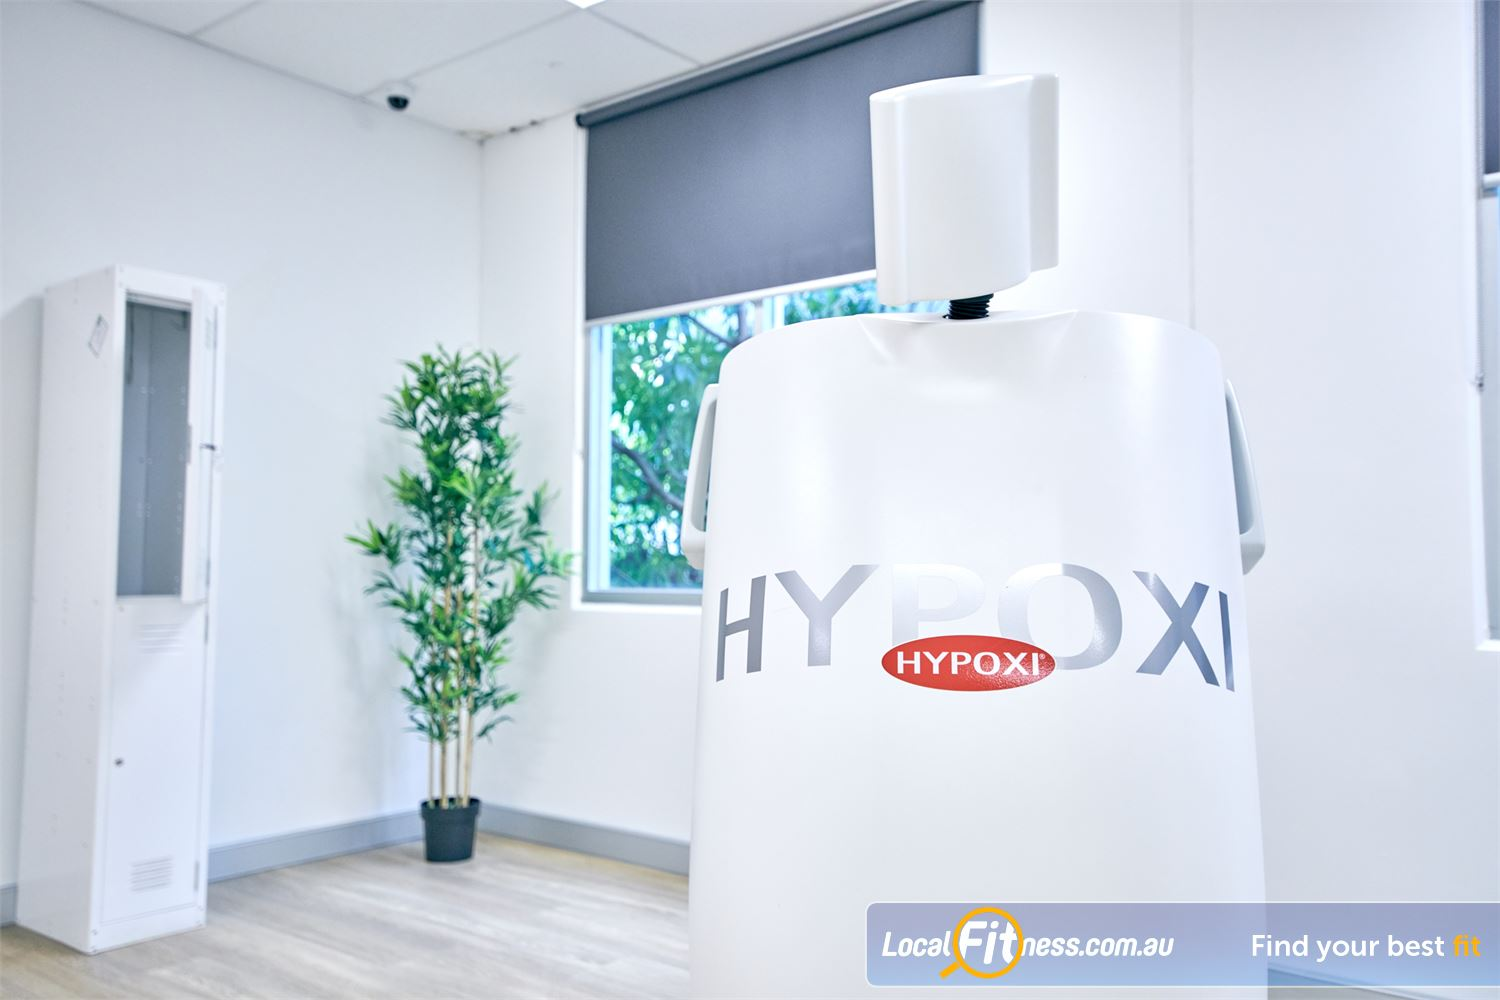 HYPOXI Weight Loss Near Lower Mitcham Our advanced HYPOXI machines will monitor your heart rate, skin temperature during treatment.